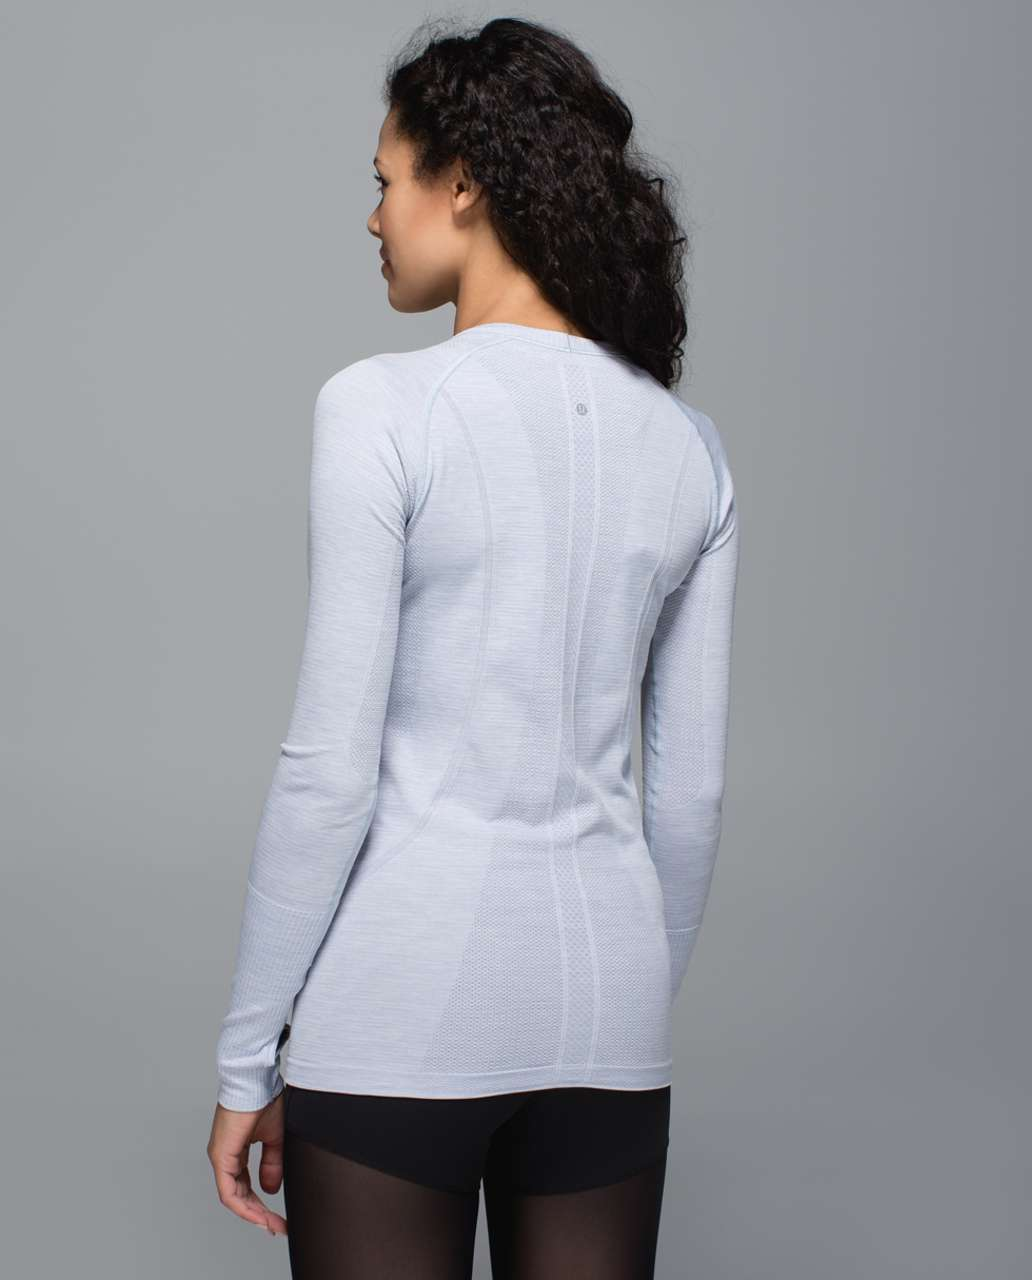 Lululemon Swiftly Tech Long Sleeve Crew - Heathered Silver Fox